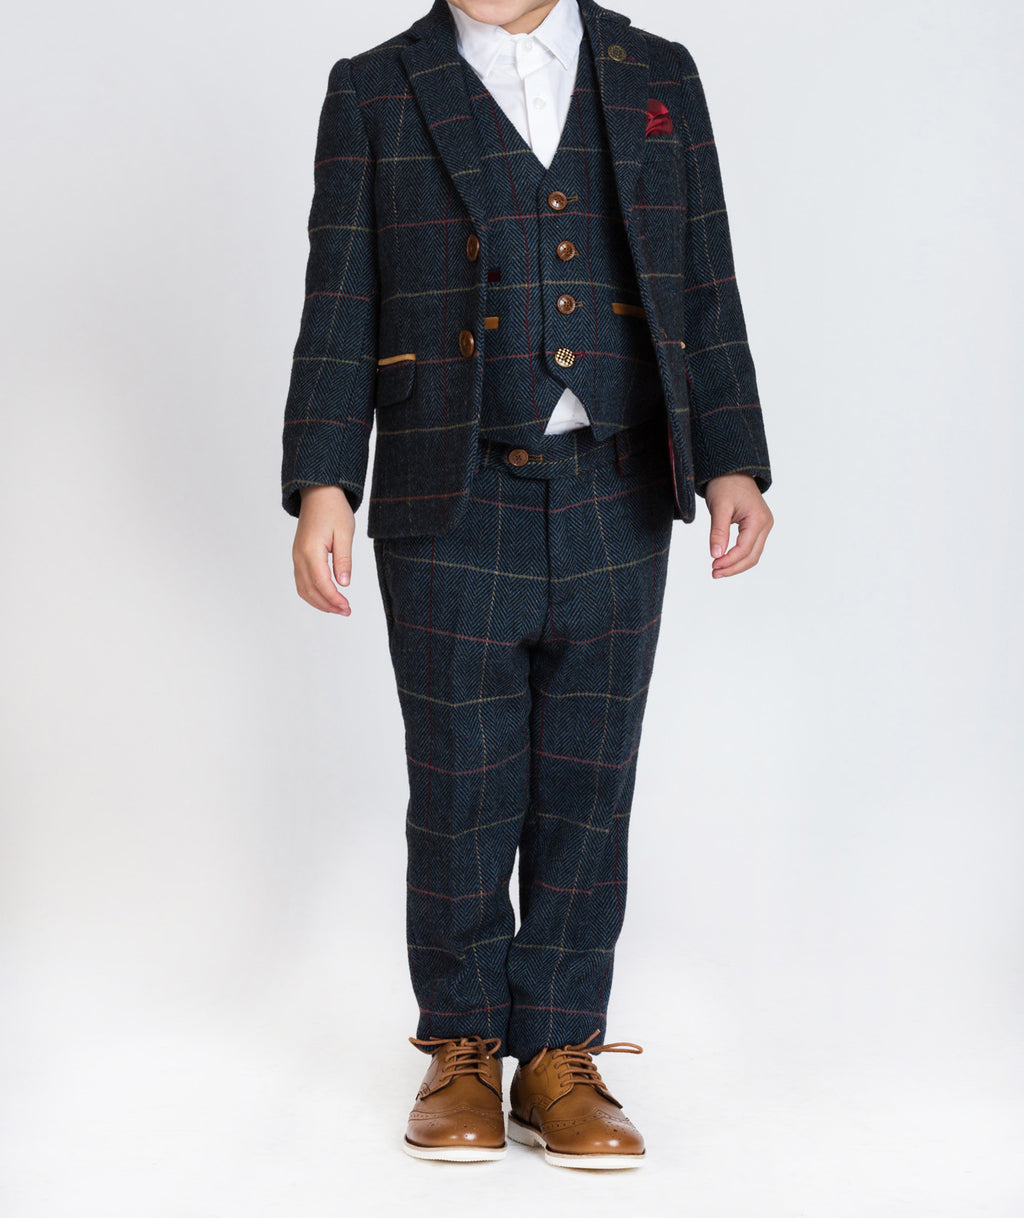 Marc Darcy Eton Blue Tweed Check Children's Three Piece